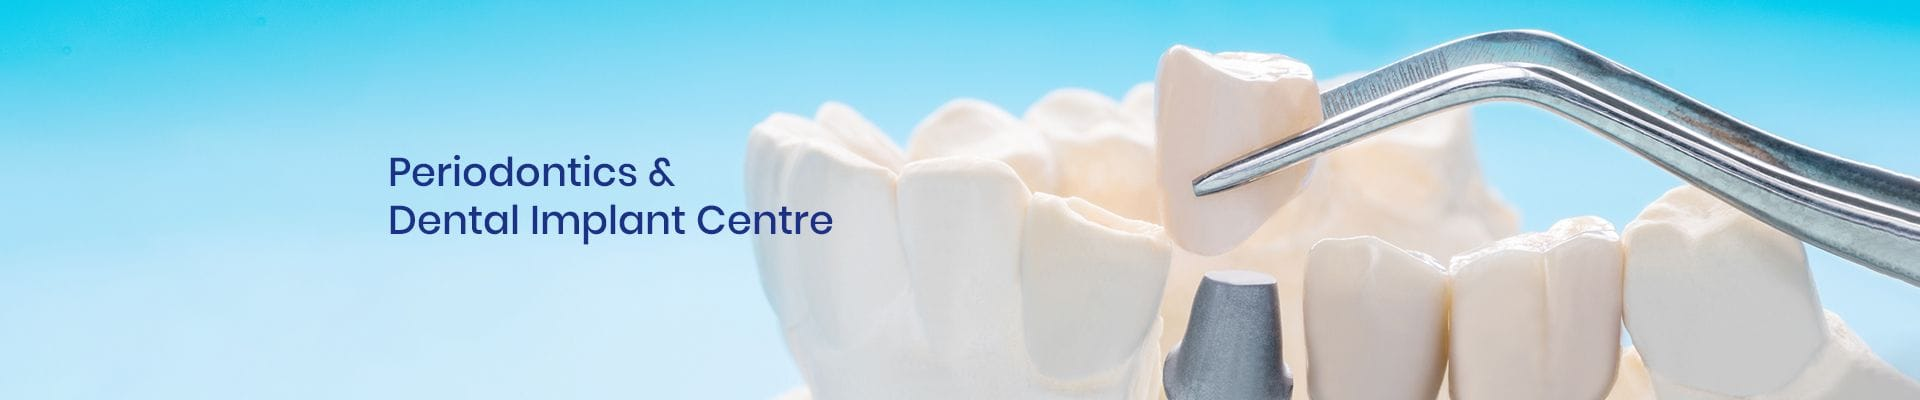 Customer Feedback | Periodontics & Dental Implant Centre QLD